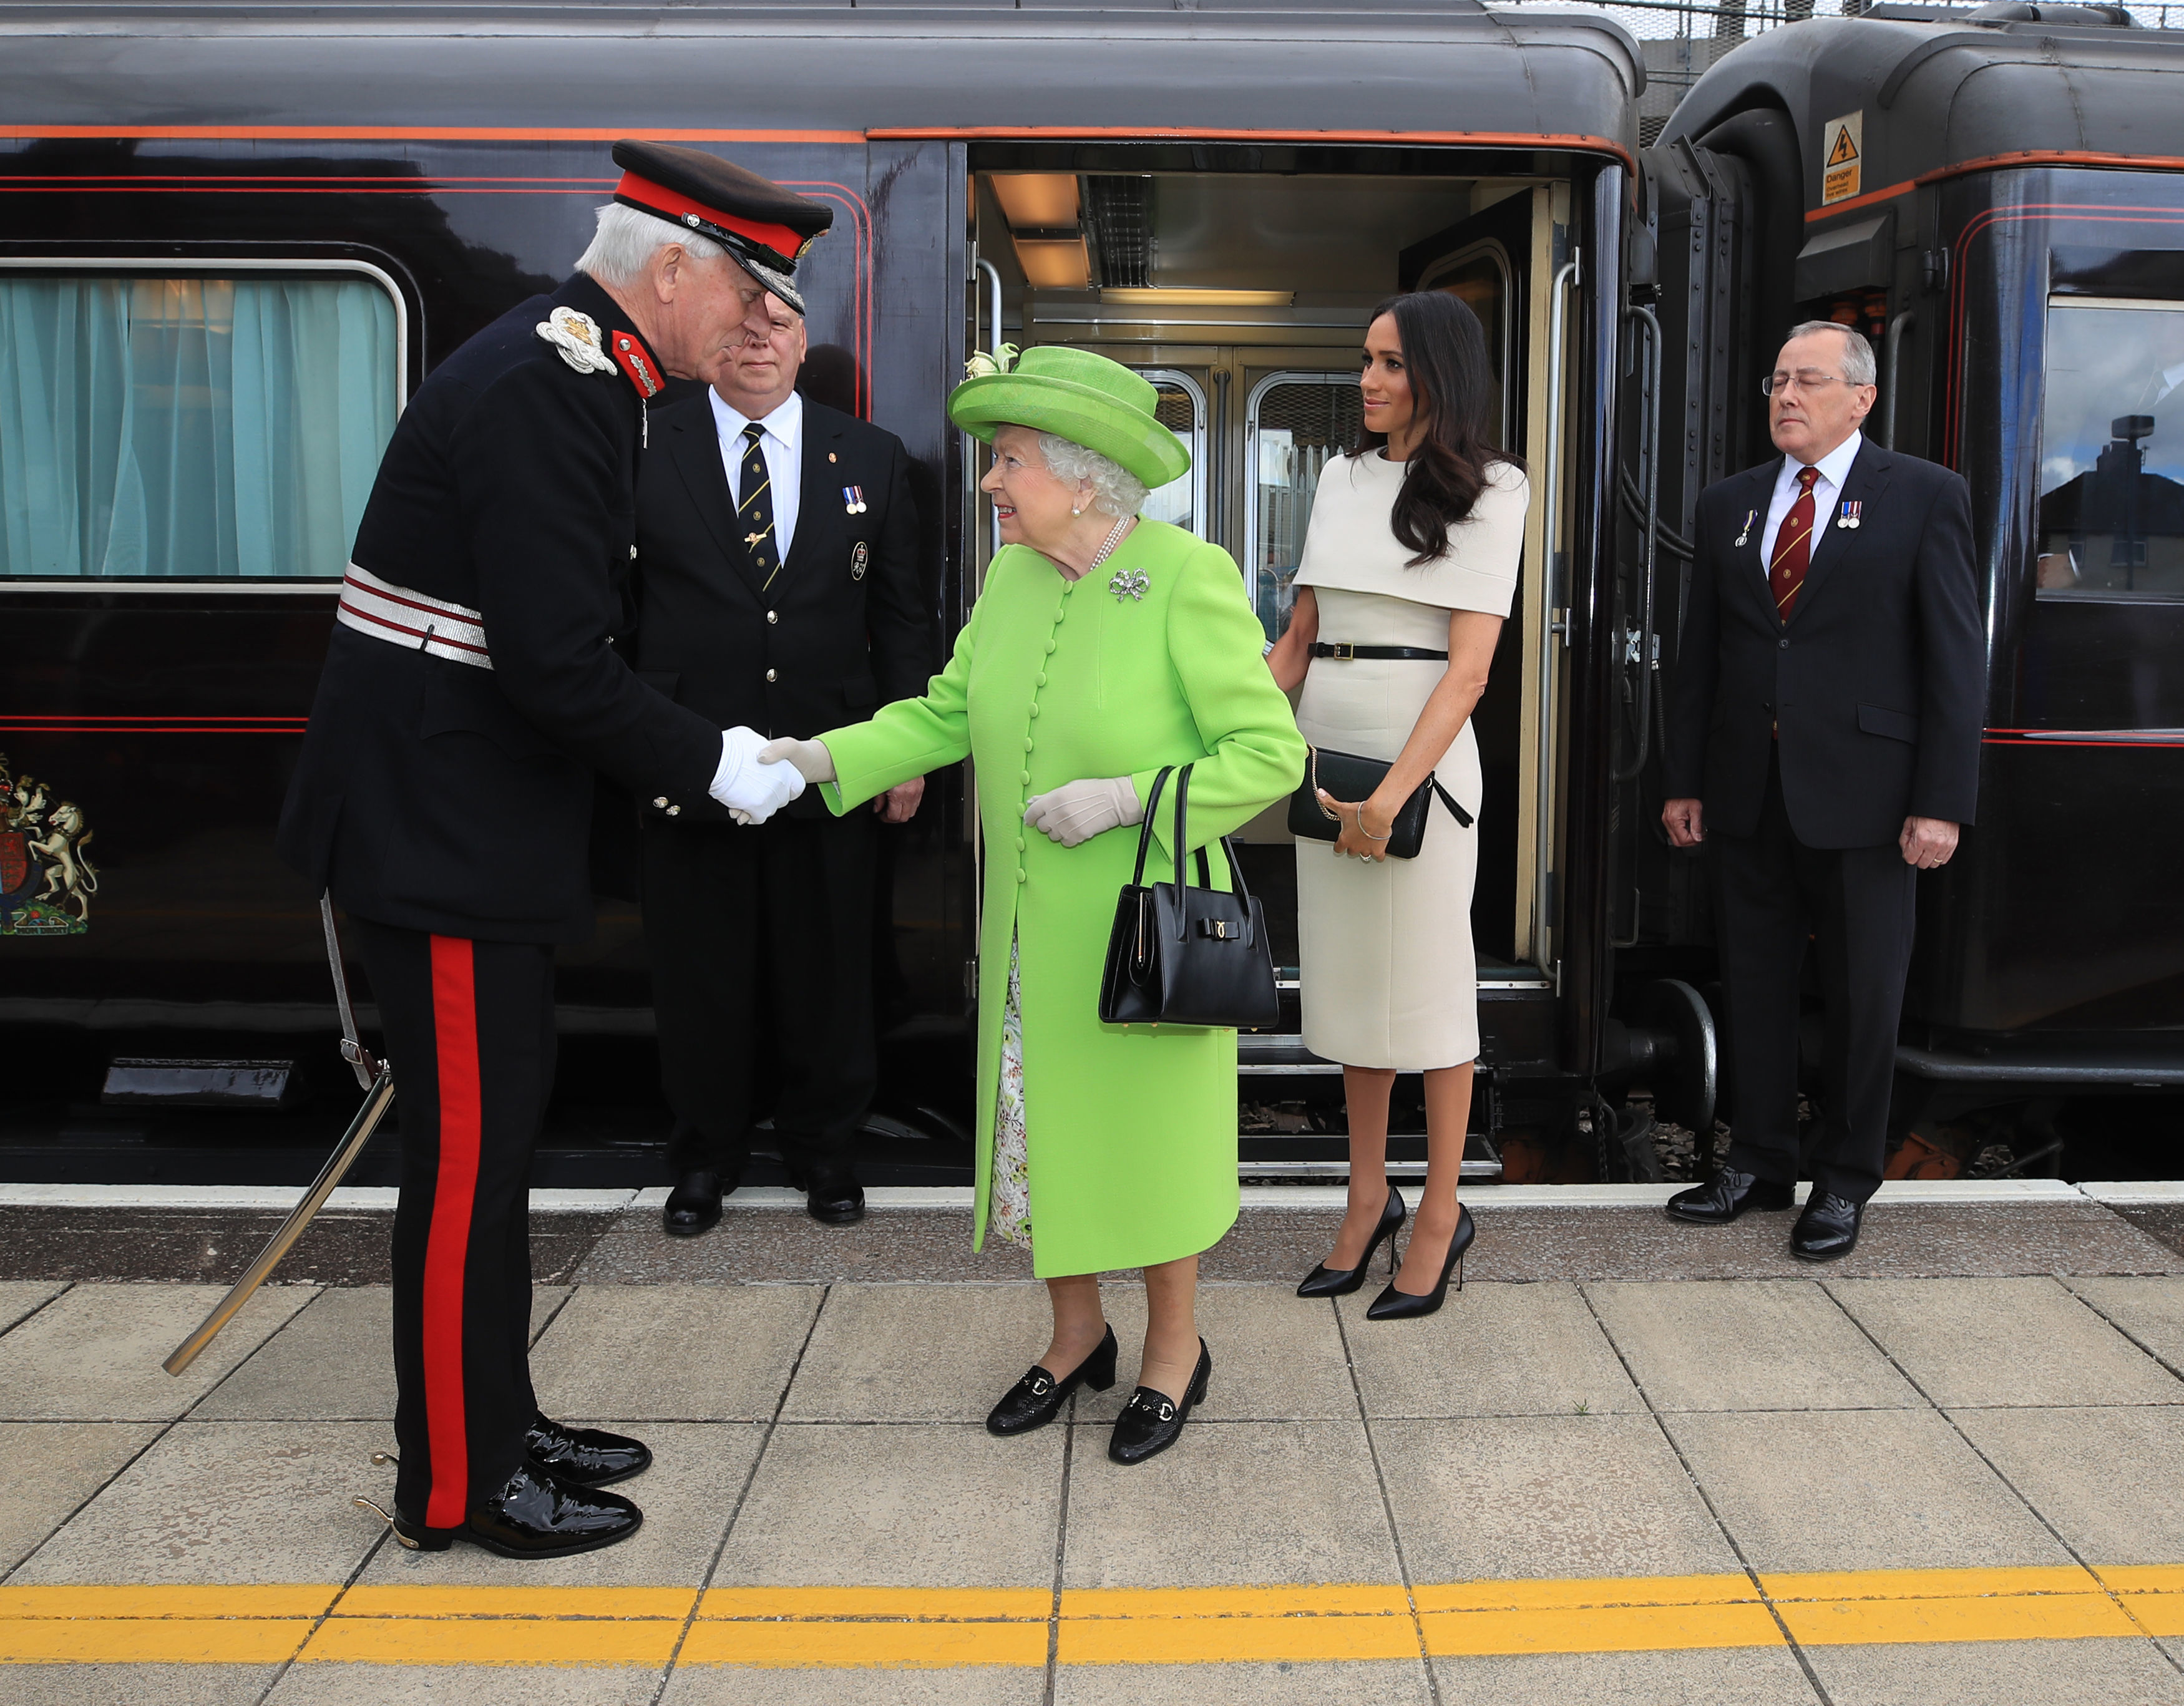 The Queen and Meghan Markle visit Cheshire